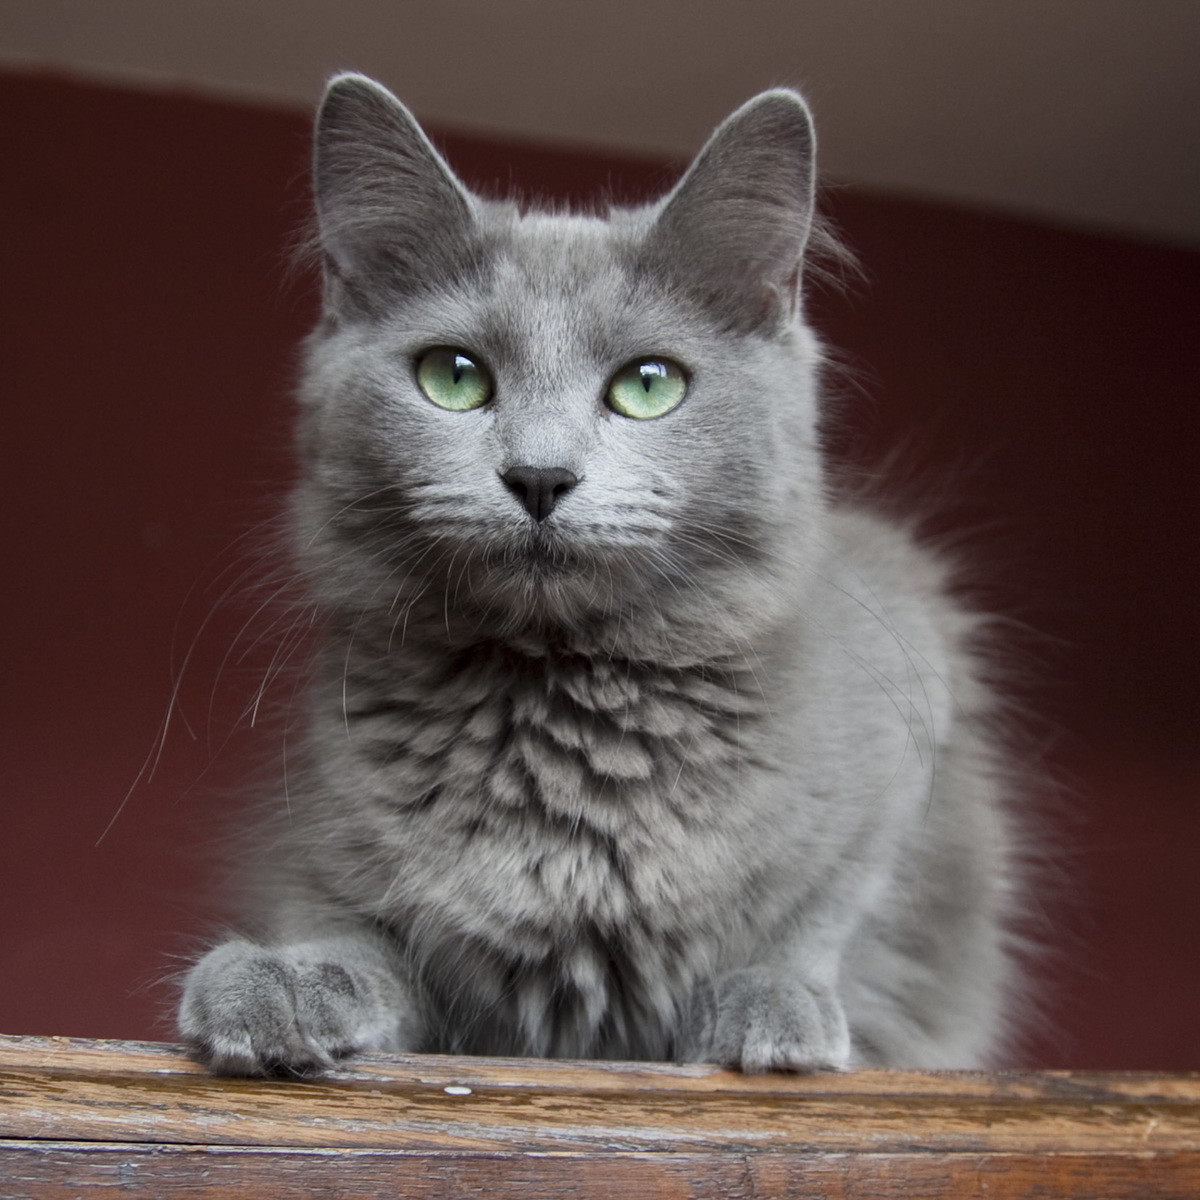 kitty spotlight: nebelung. Nebelung can be translated to German, Nebel meaning ('mist' or 'fog'), and the name of a medieval Germanic saga, Nibelungenlied. Thes